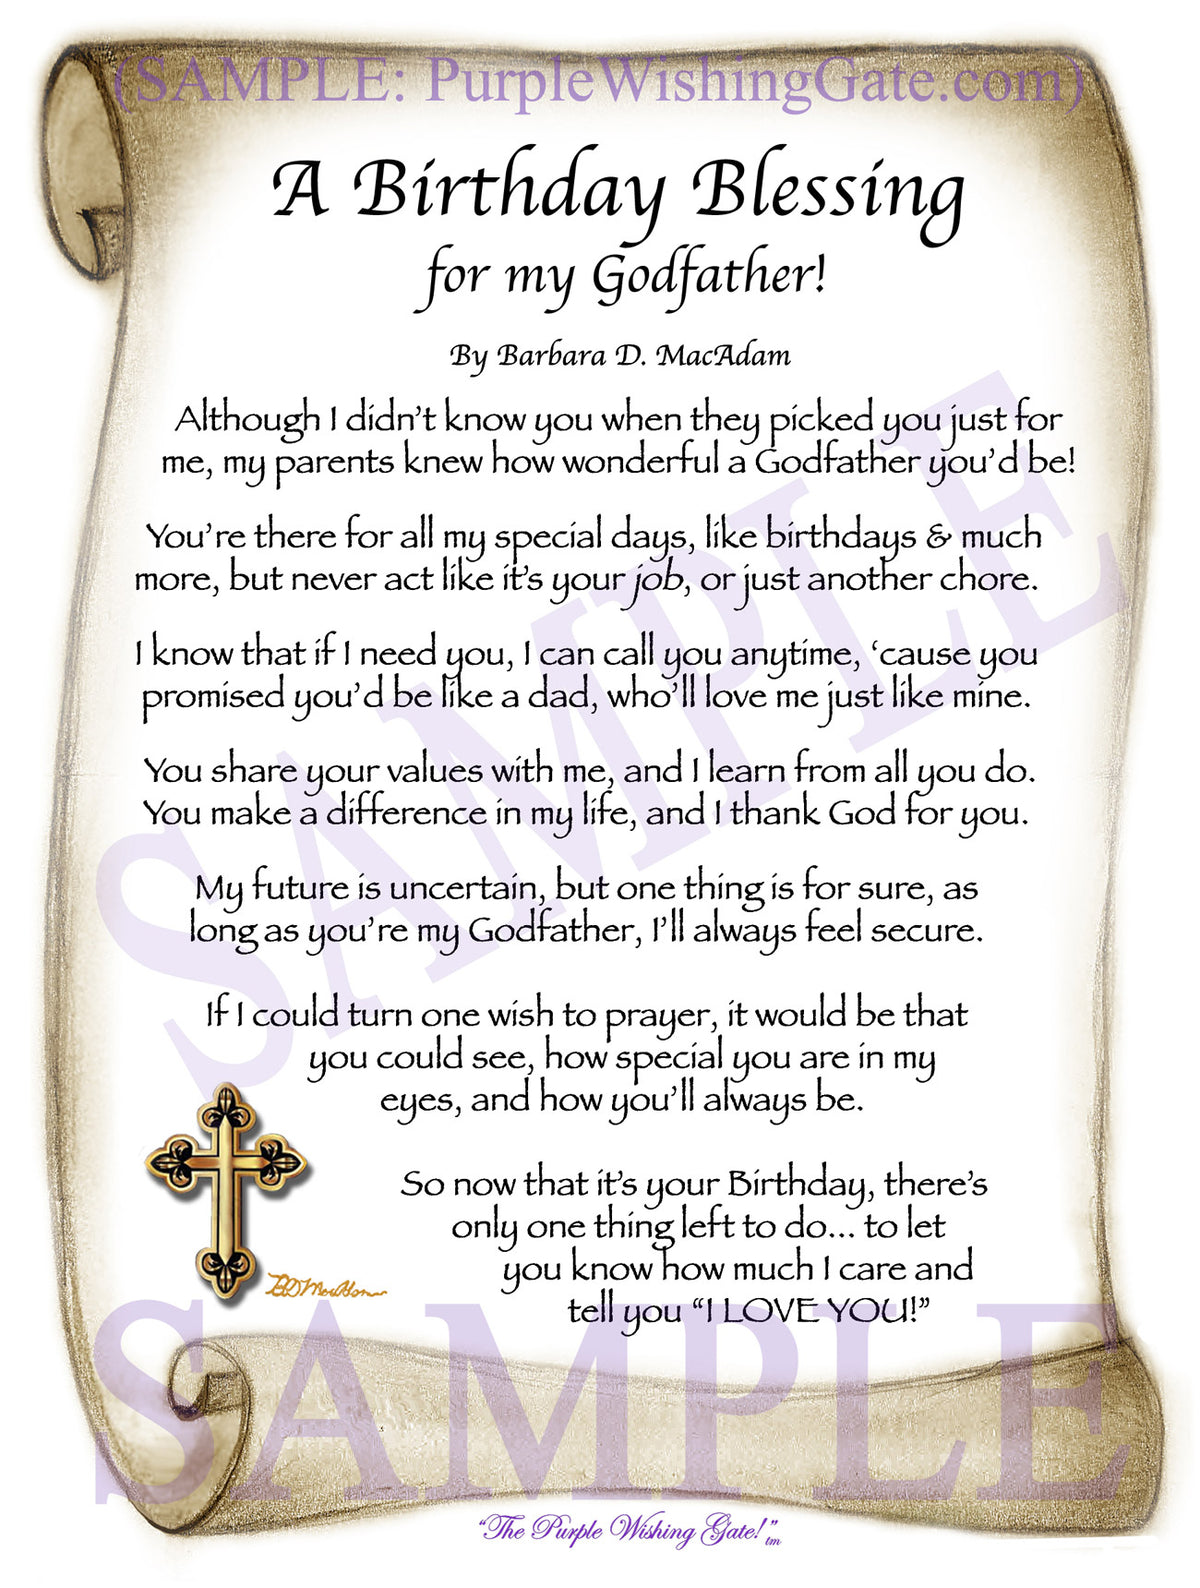 Birthday Gift For Godfather Personalized Blessing Purplewishinggate